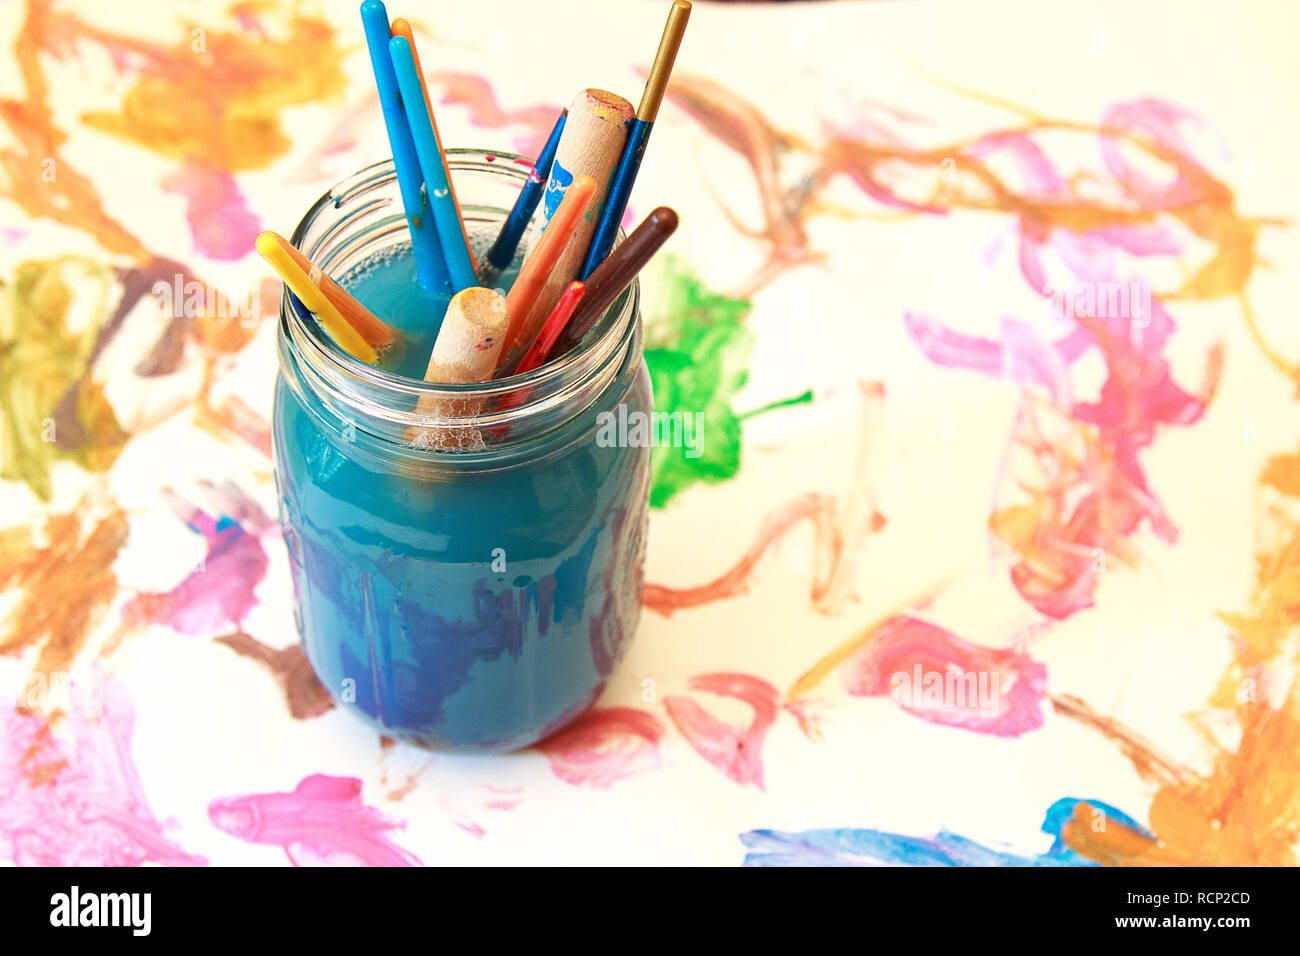 Kid's Messy paint brushes soaking in a glass jar of soapy water. Stock Photo